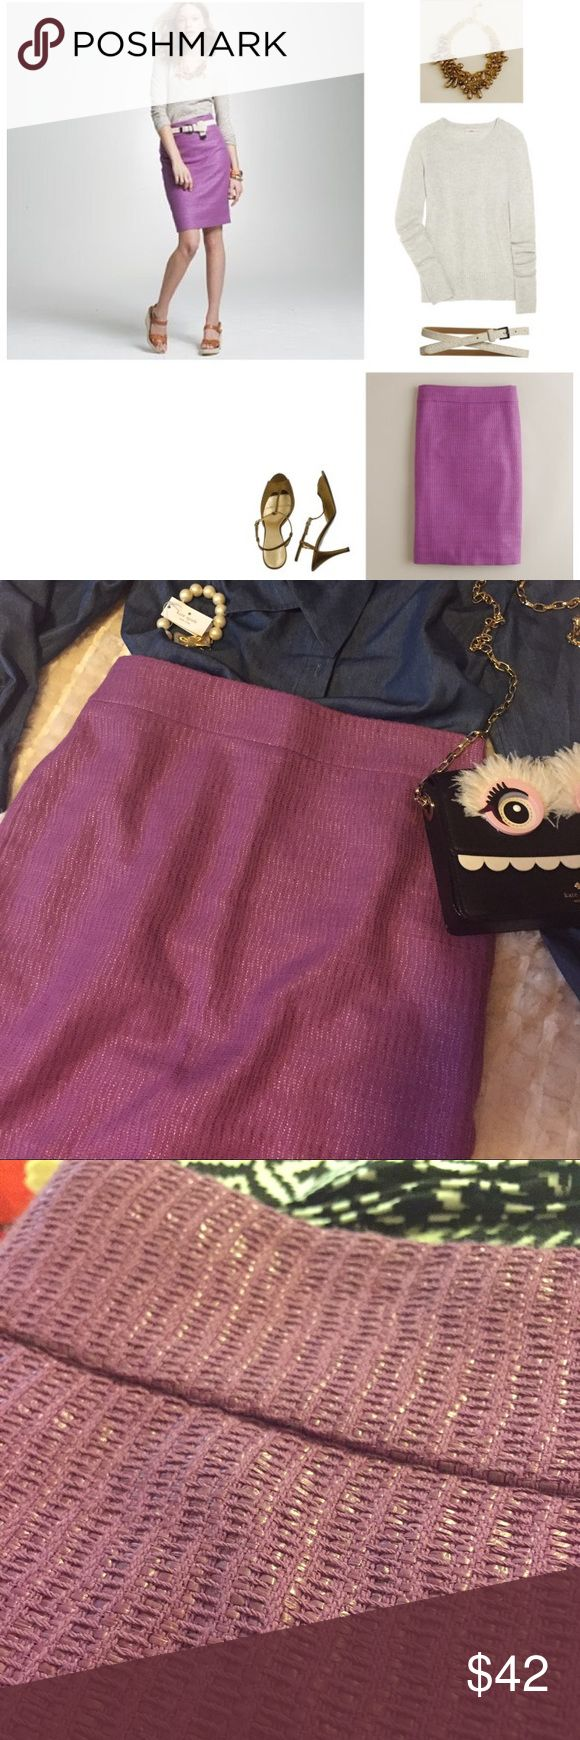 💜 J Crew purple textured fabric pencil skirt 💜 Great classic skirt in classic JCrew quality and a fun color! J. Crew Skirts Pencil